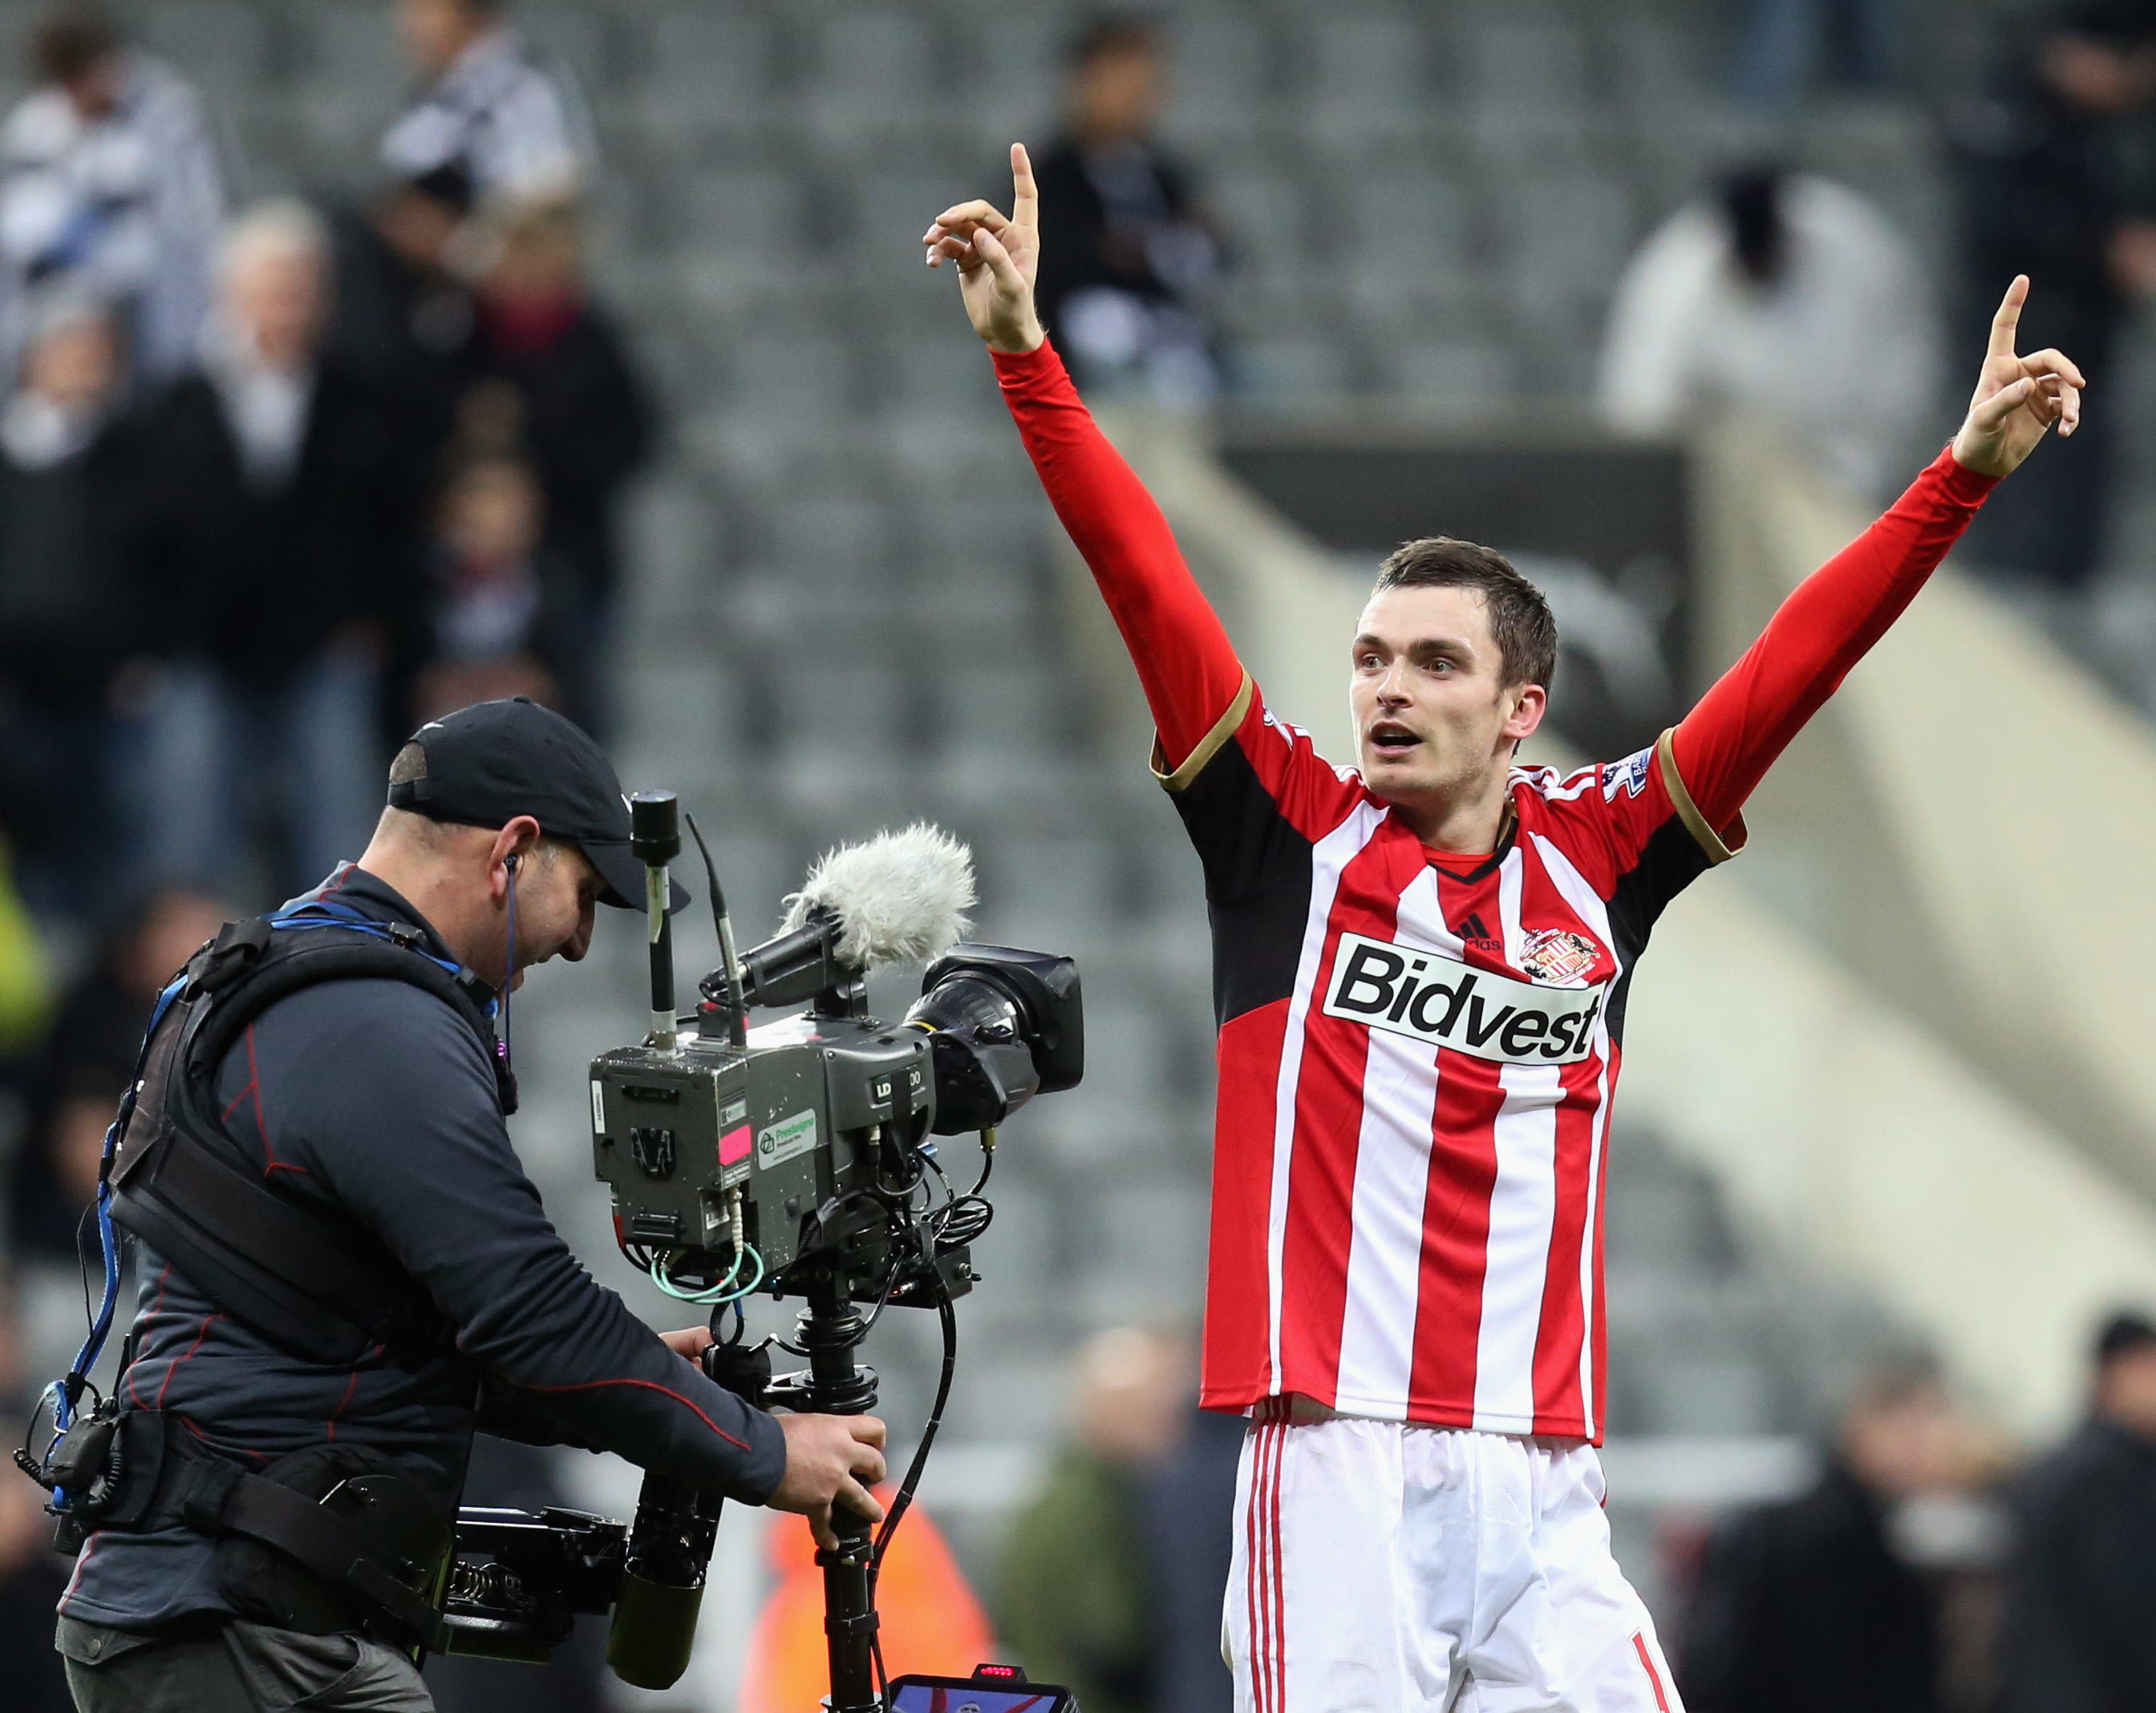 The reason Sunderland beat Newcastle United in the Tyne-Wear derby